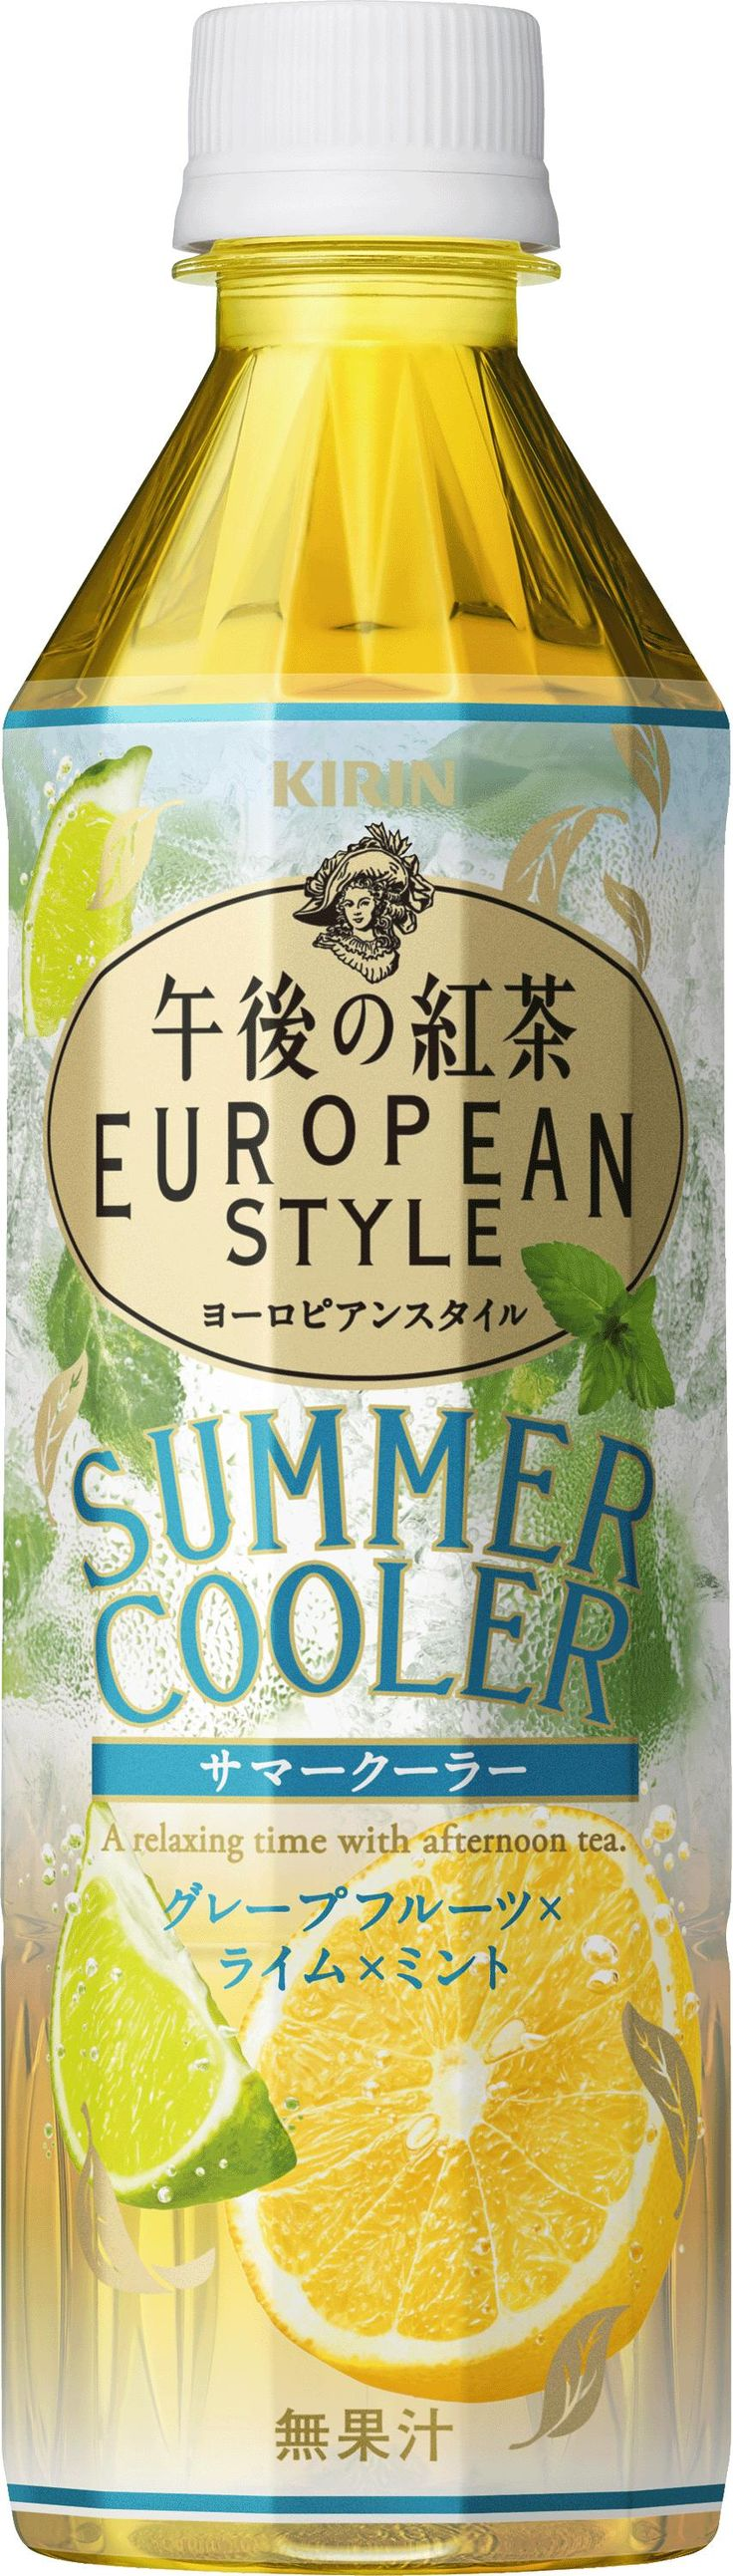 Summer: KIRIN - 午後の紅茶 European Style Summer Cooler PD